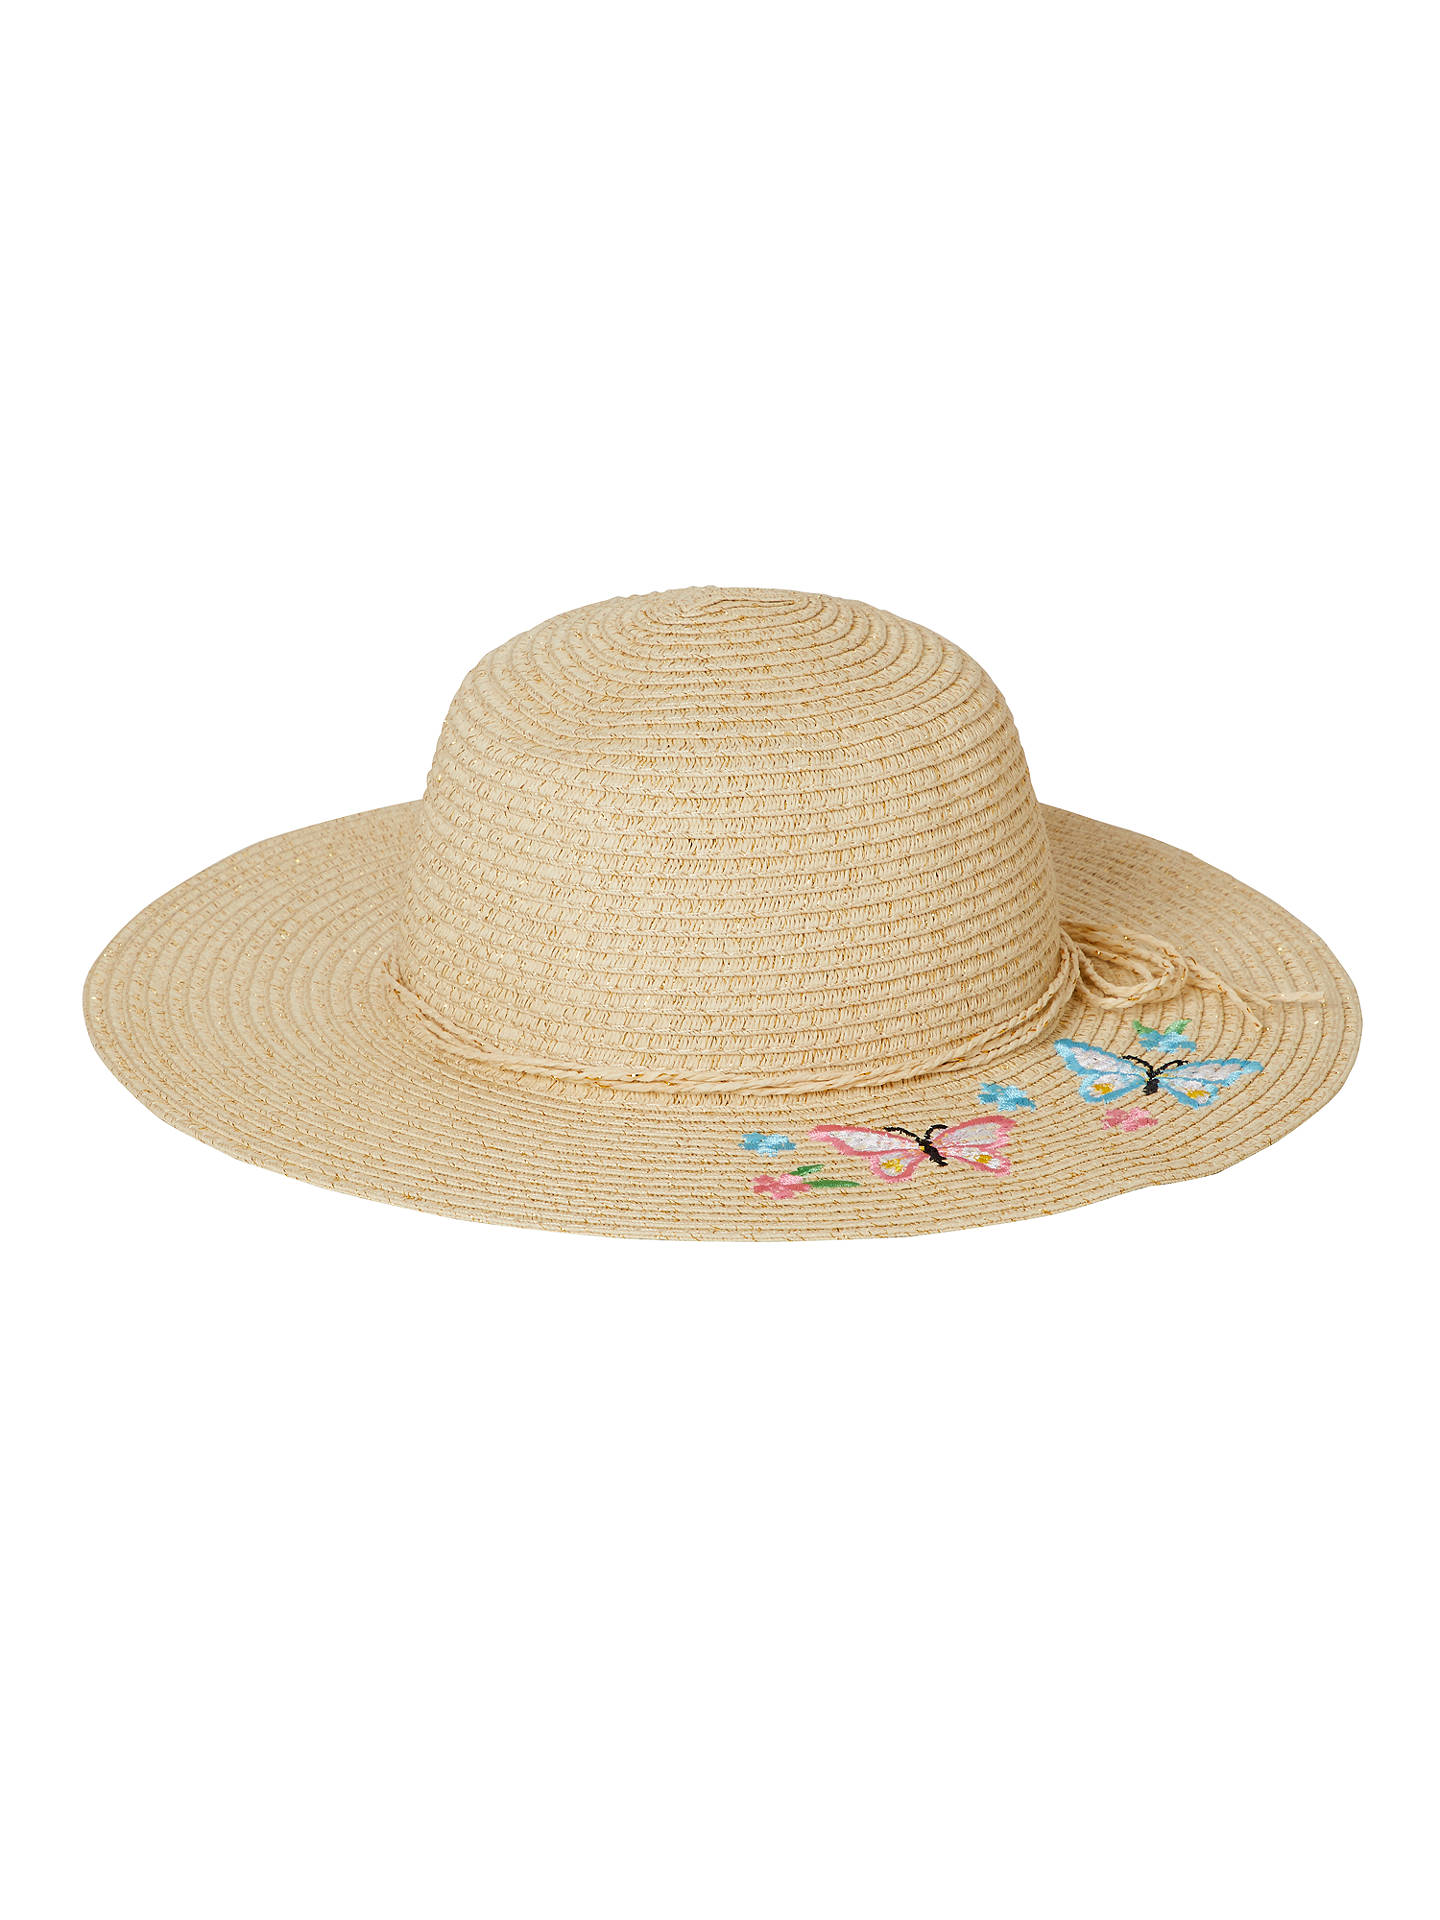 691cc079a444ef Buy John Lewis & Partners Girls' Straw Sun Hat with Butterfly, Natural, S  ...